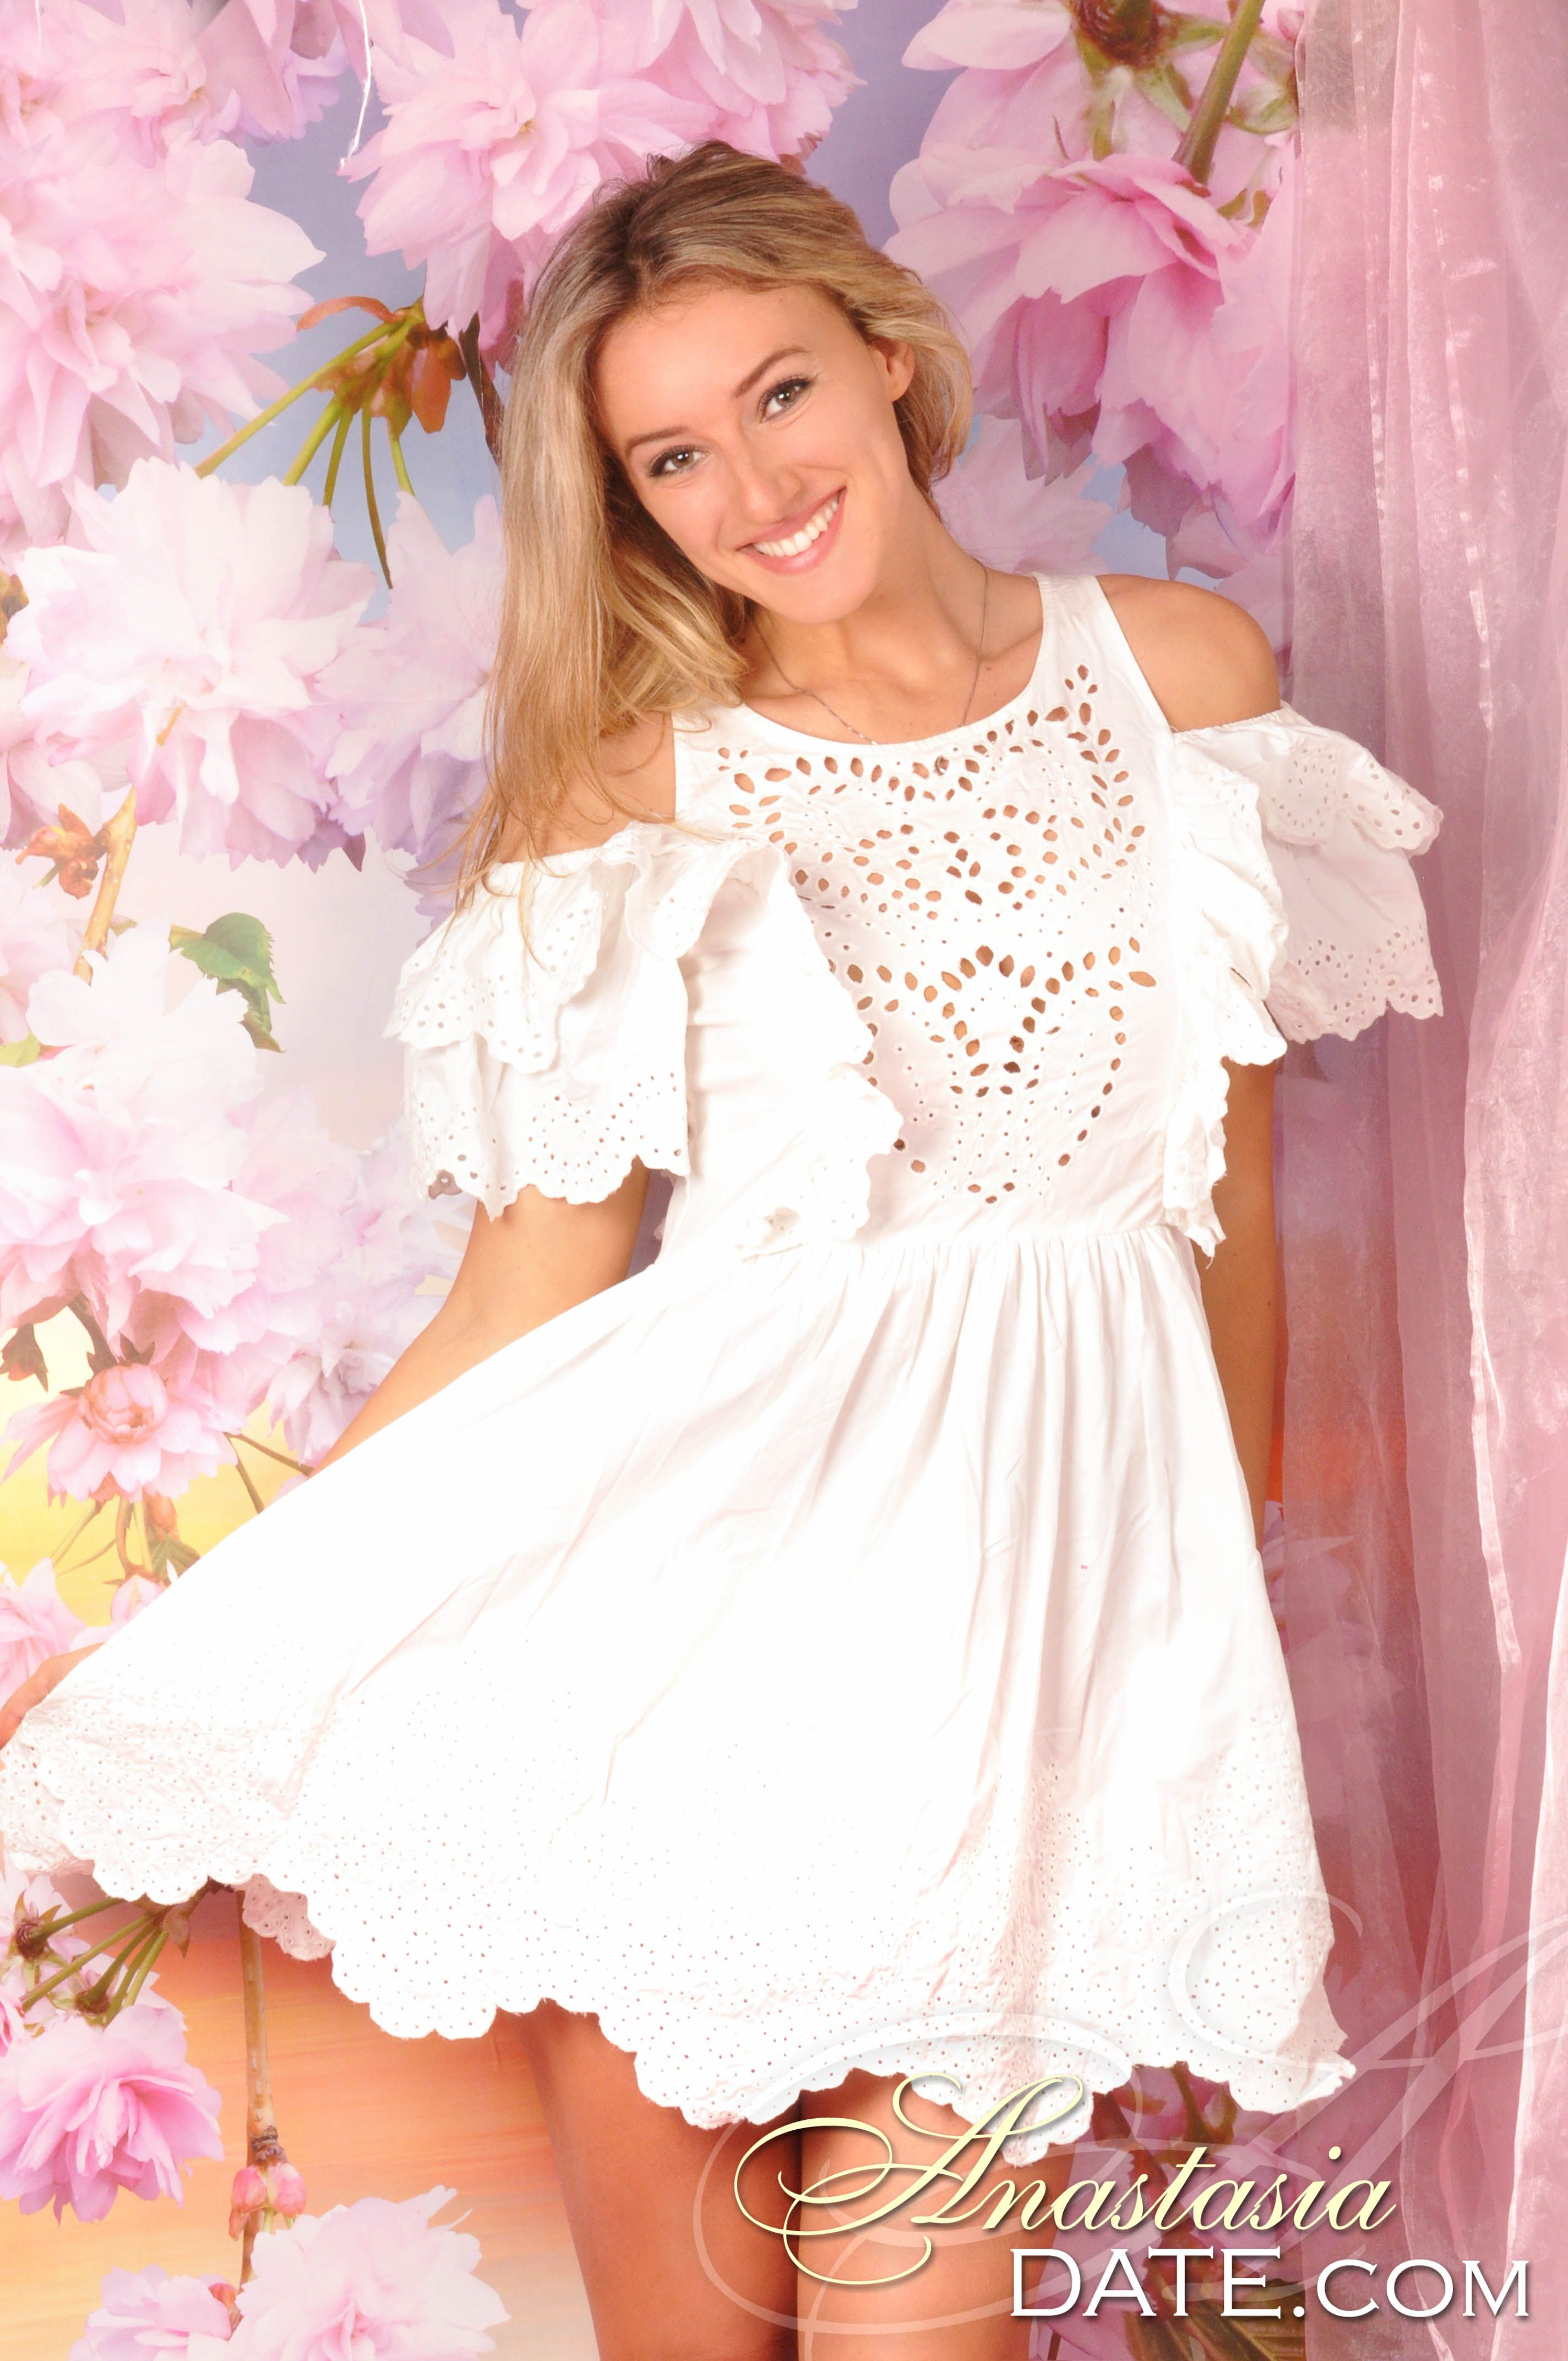 AnastasiaDate offers thrilling companionship with romantic